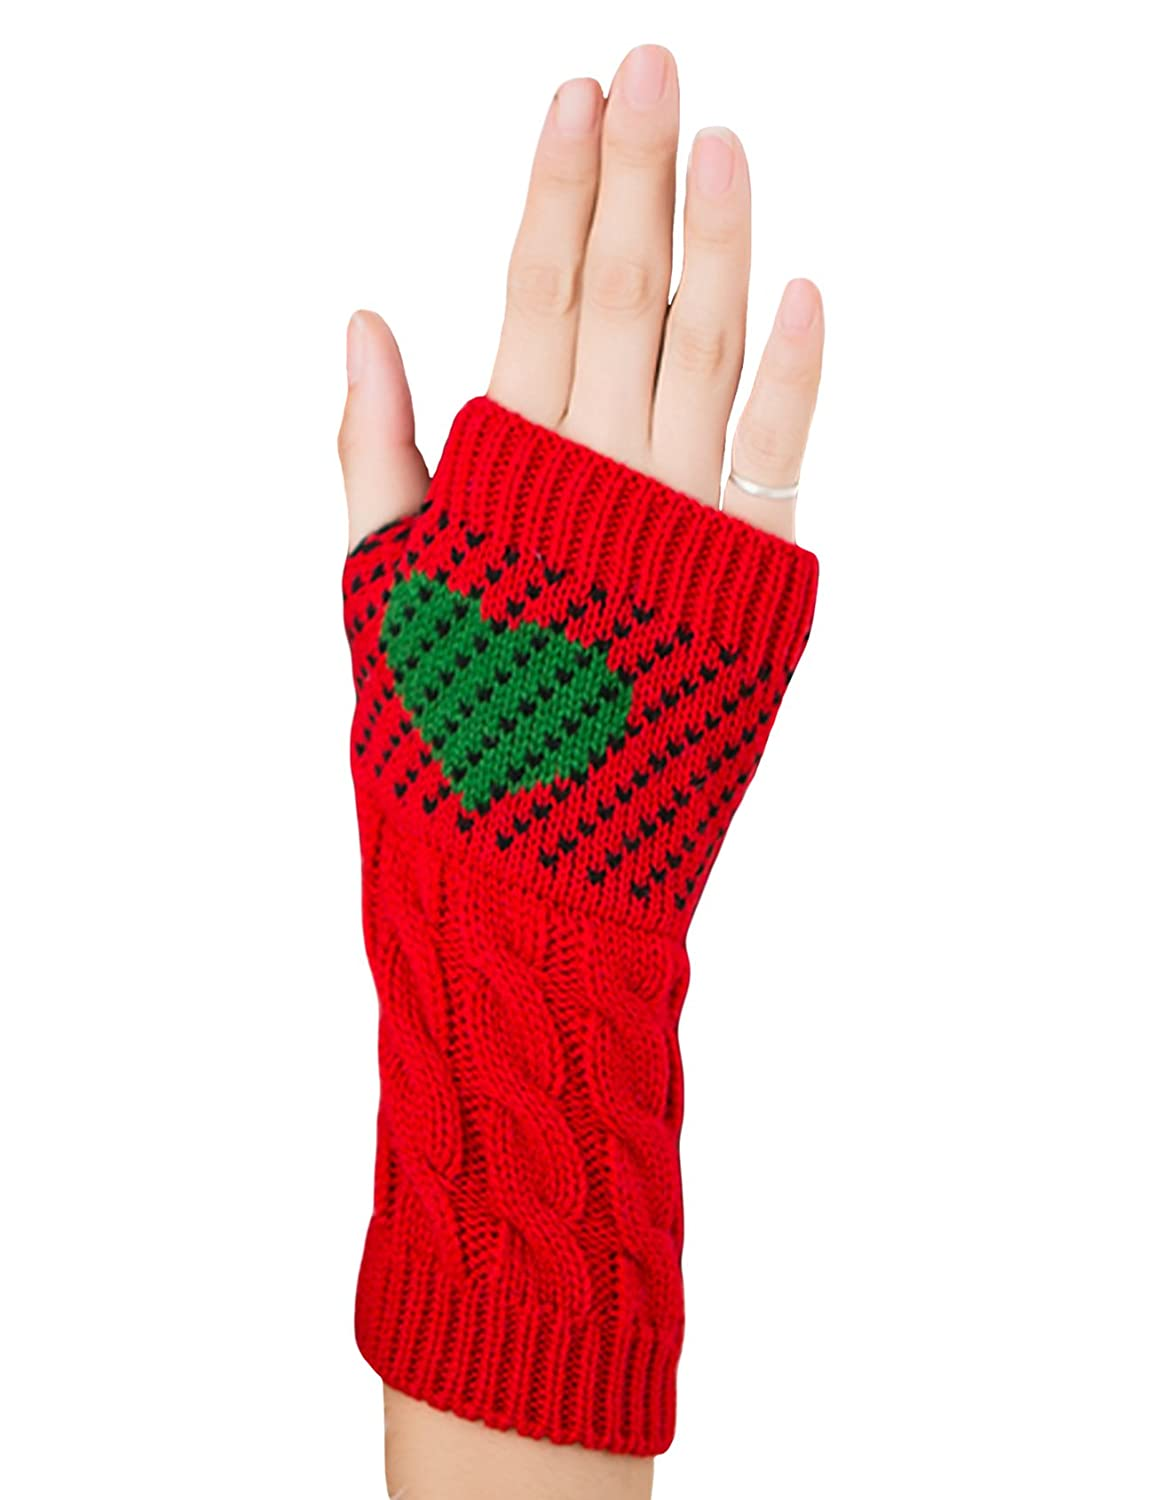 Bestgift Womens Crochet Knitted Fingerless Gloves with Thumb Hole BSGFWJ0293-7